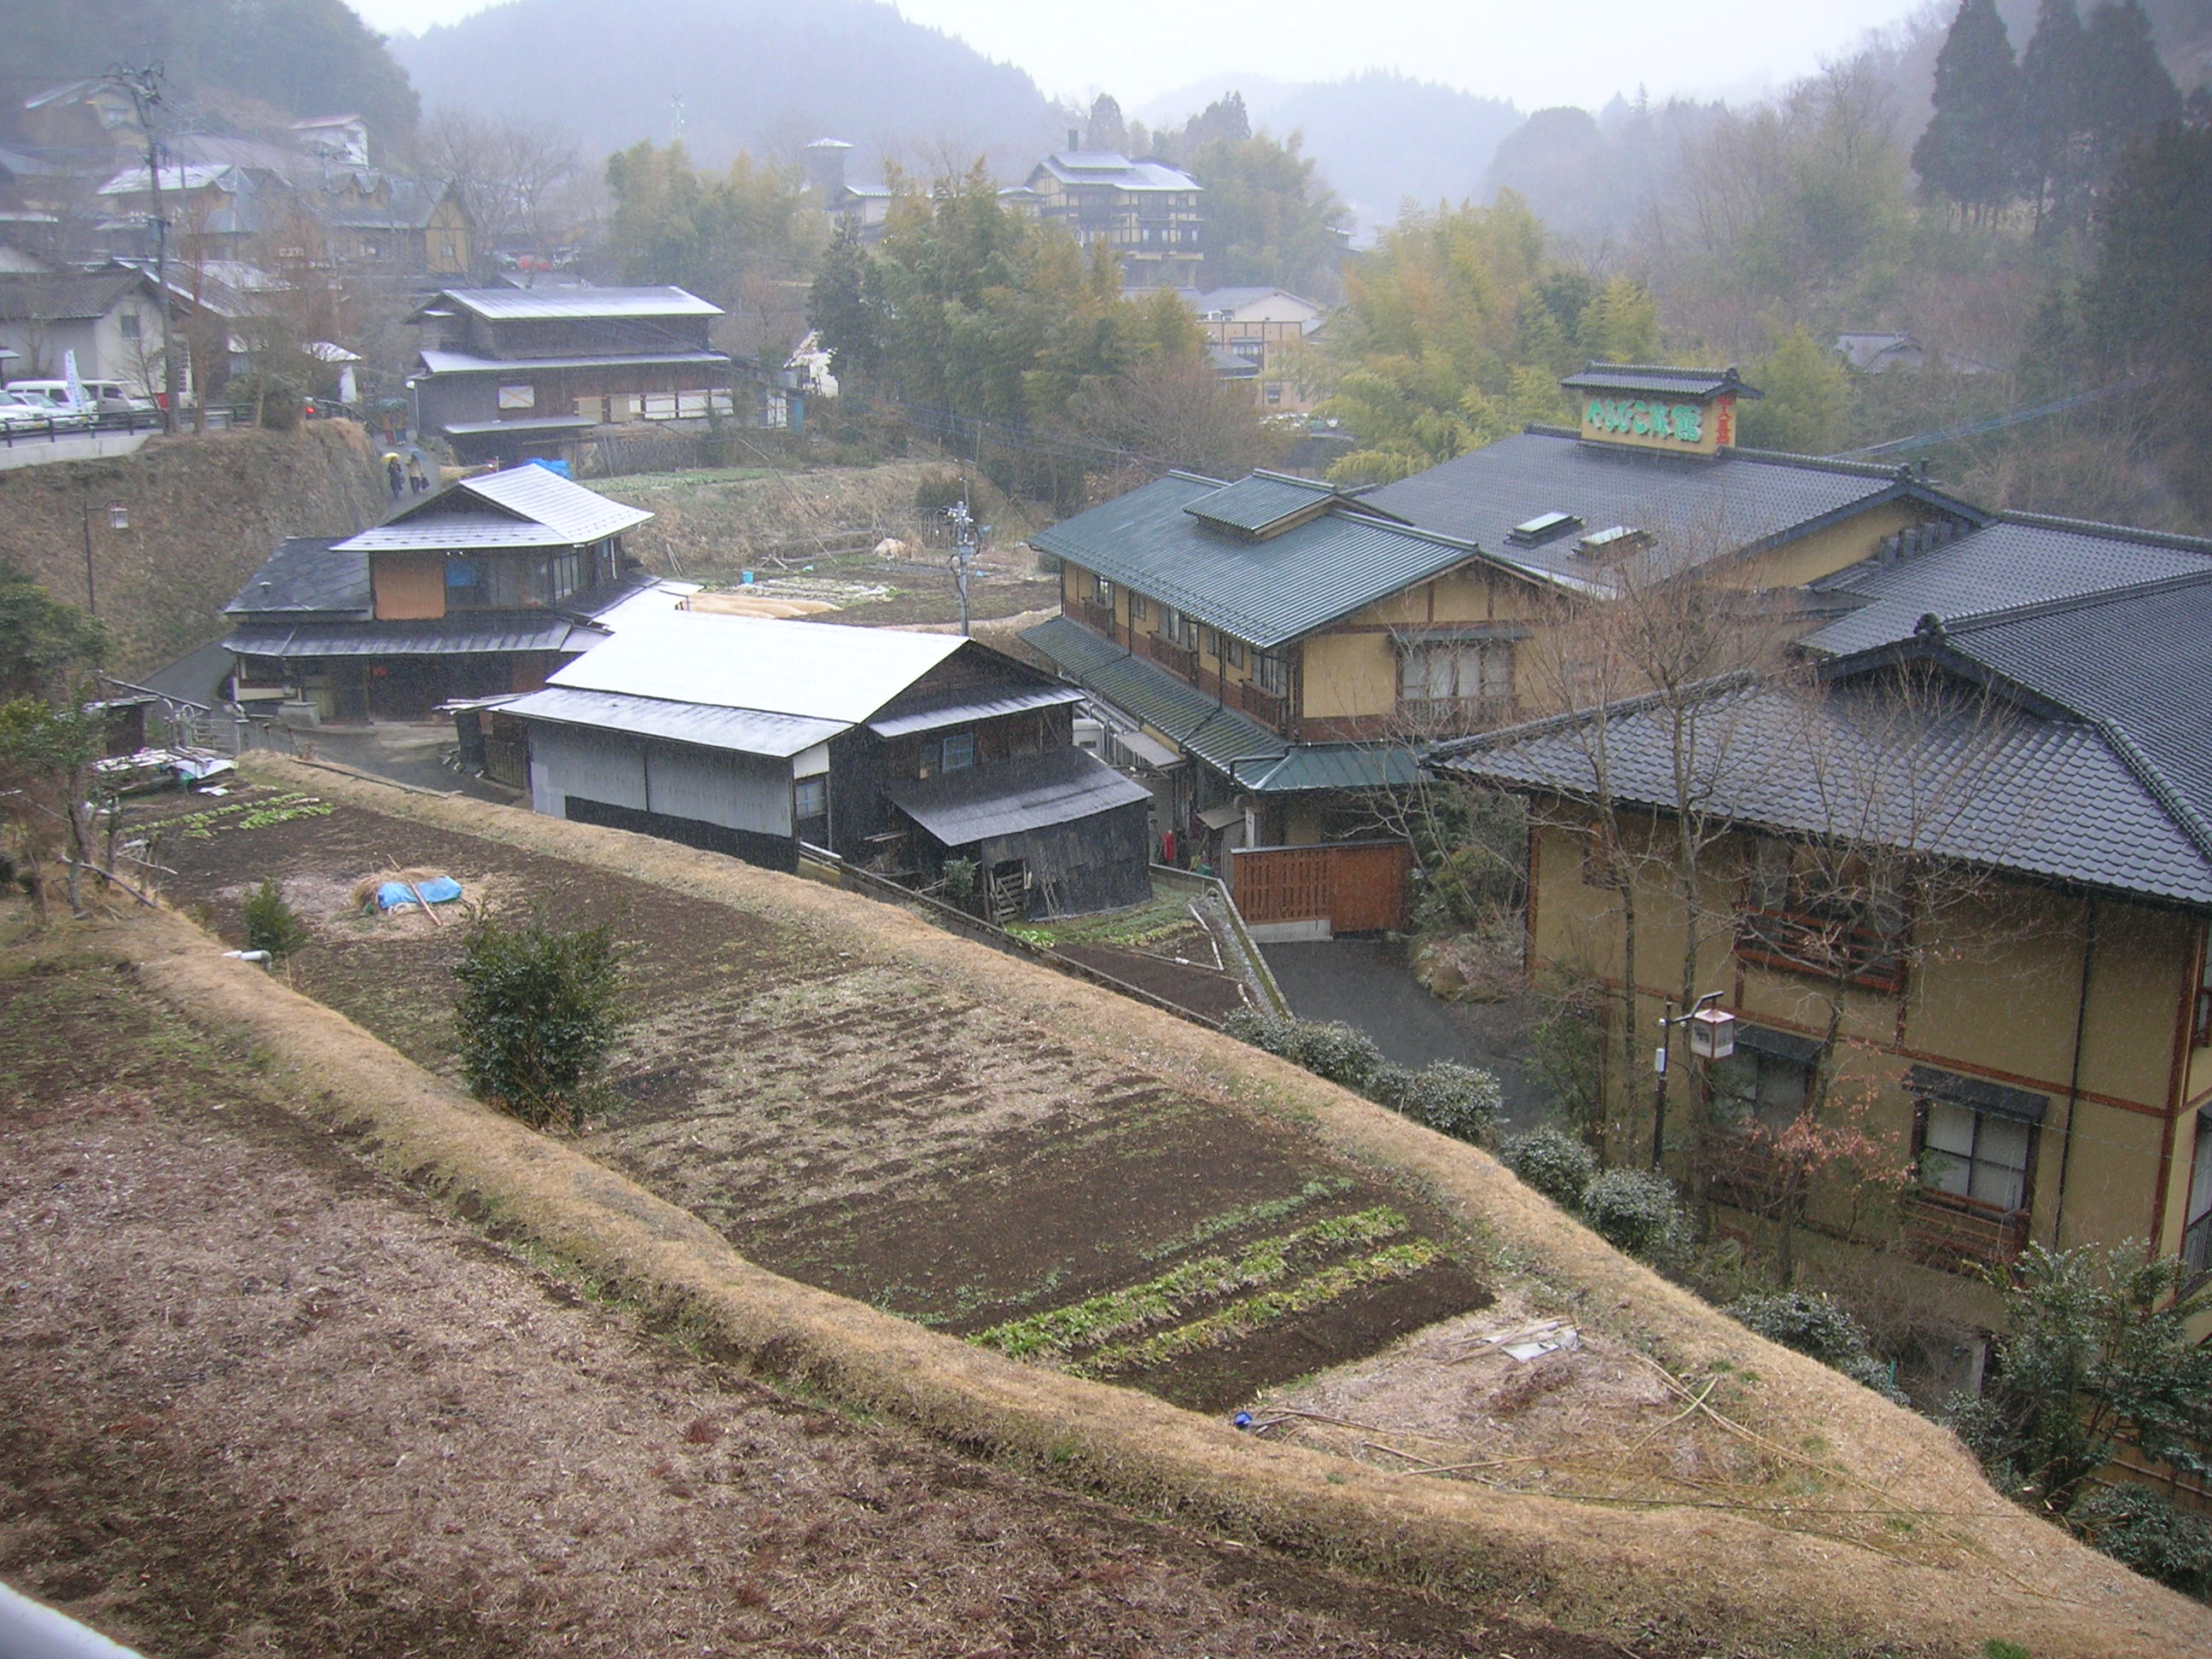 https://upload.wikimedia.org/wikipedia/commons/f/f8/Kurokawa_onsen_001.JPG